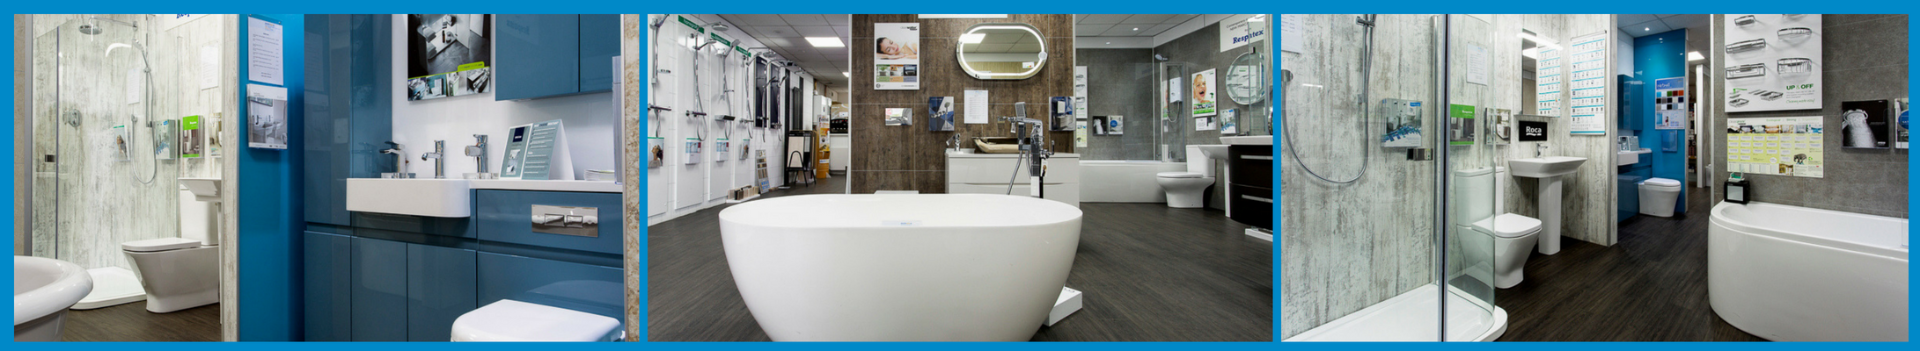 Plumbstore Glasgow Bathroom display areas with in plumbstore maryhill bathroom showroom